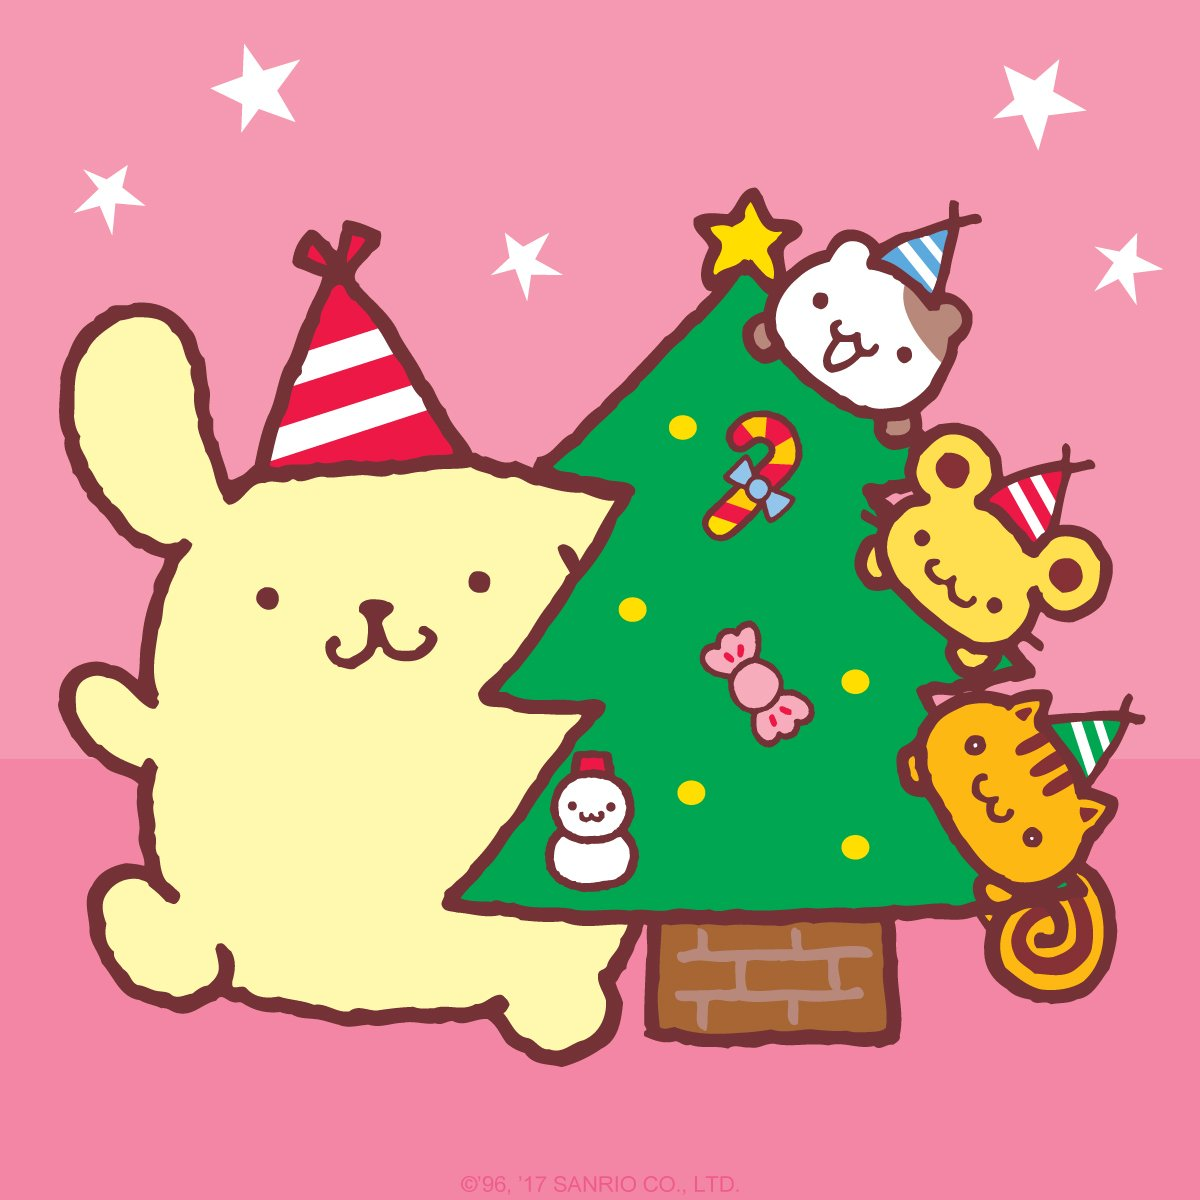 Black Friday - Sanrio